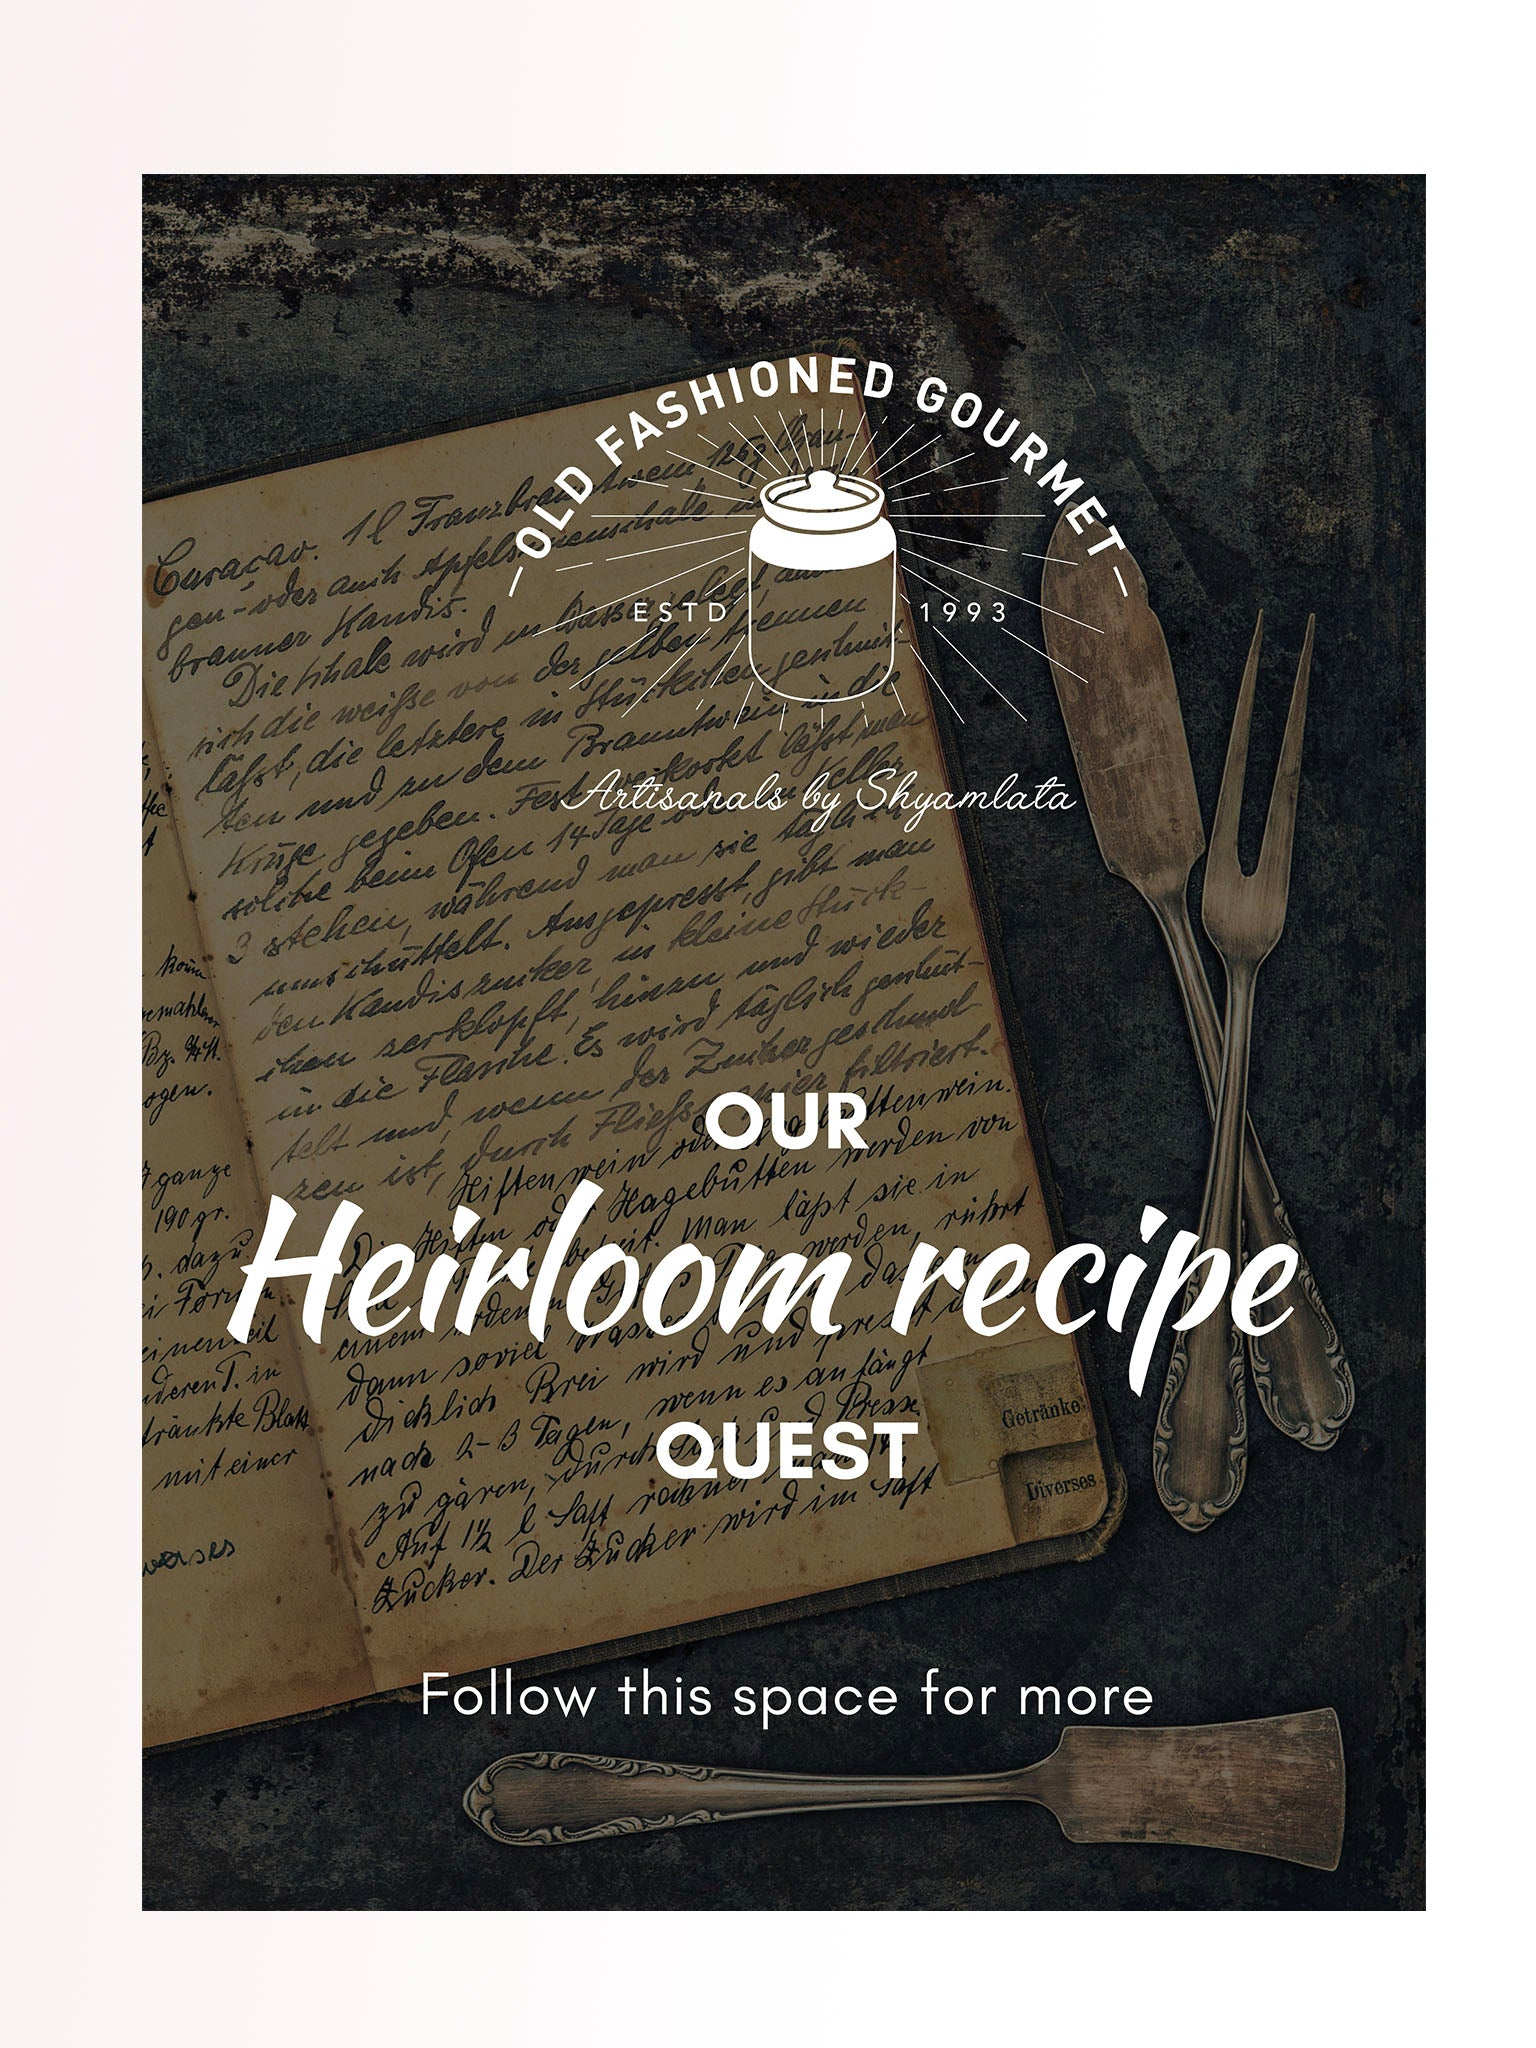 Heirloom recipe Journal